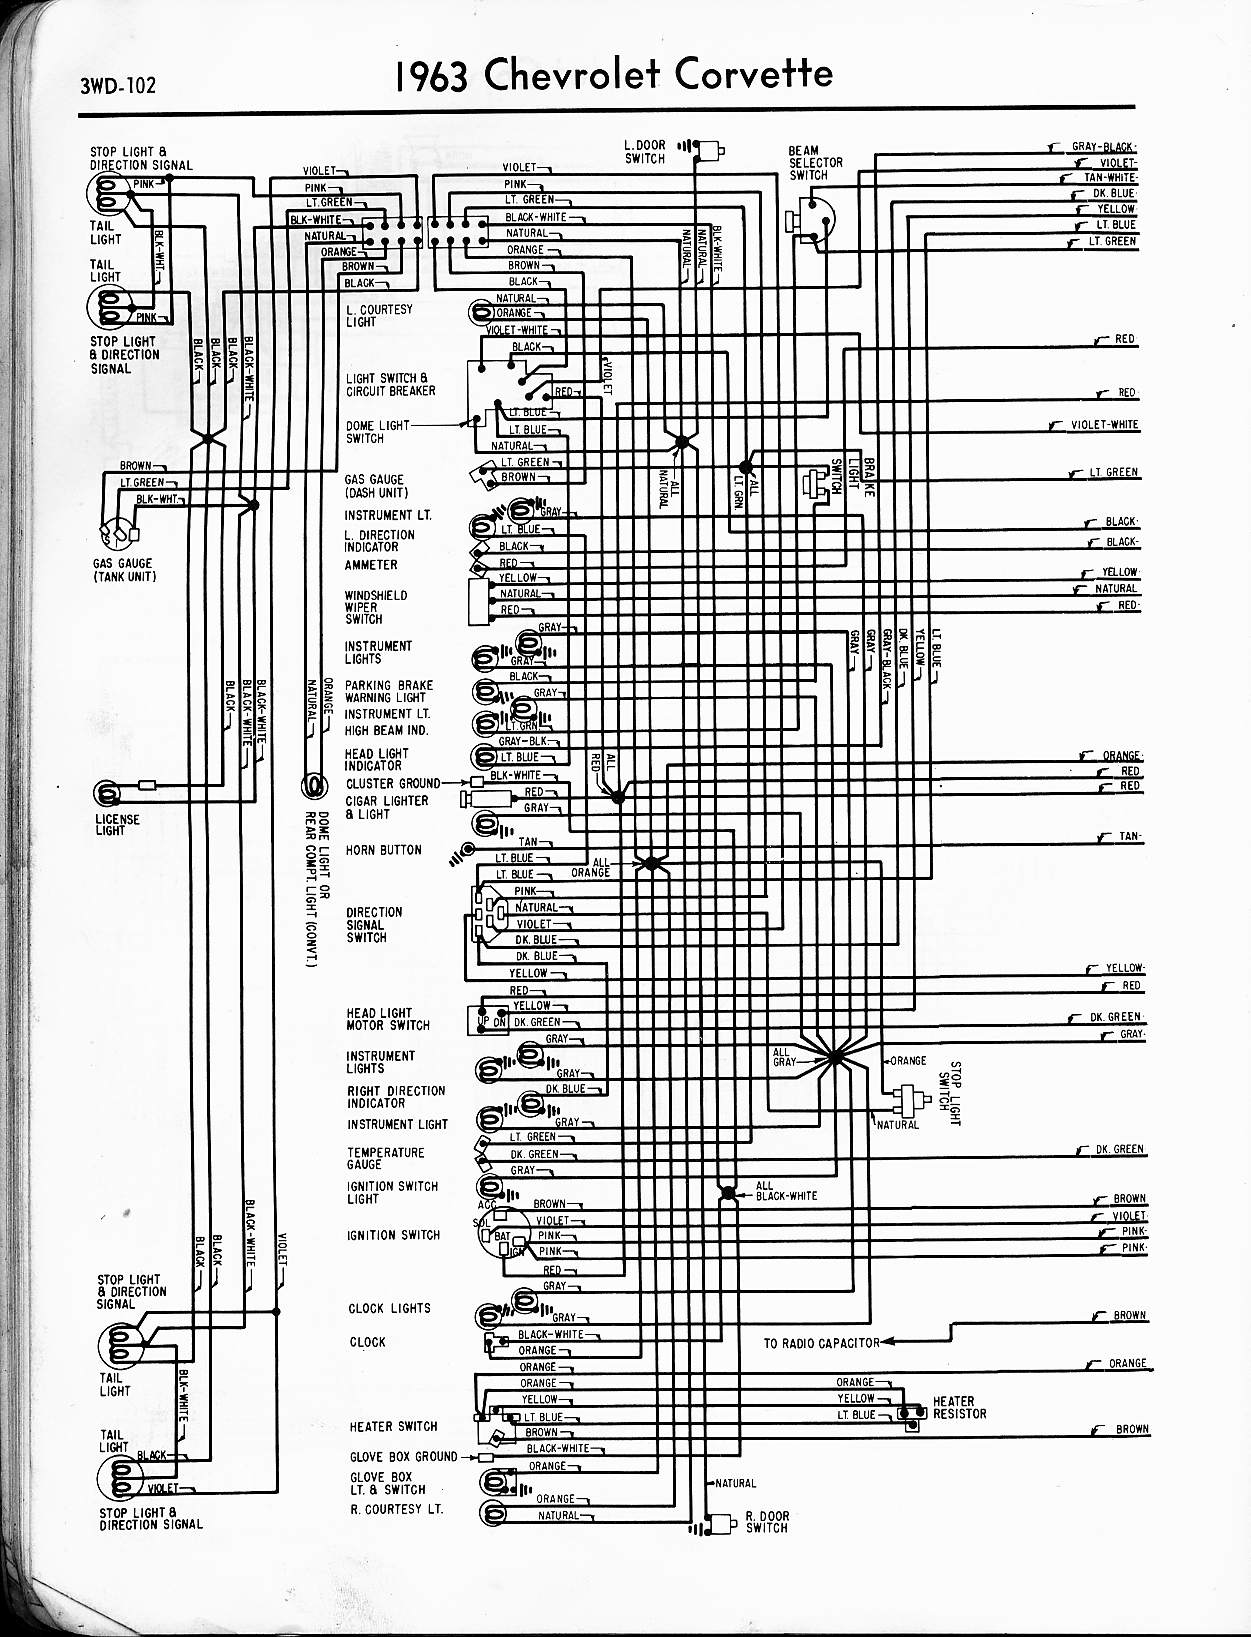 57 65 Chevy Wiring Diagrams Ignition Switch Diagram 2005 Avalanche 1963 Corvette Left